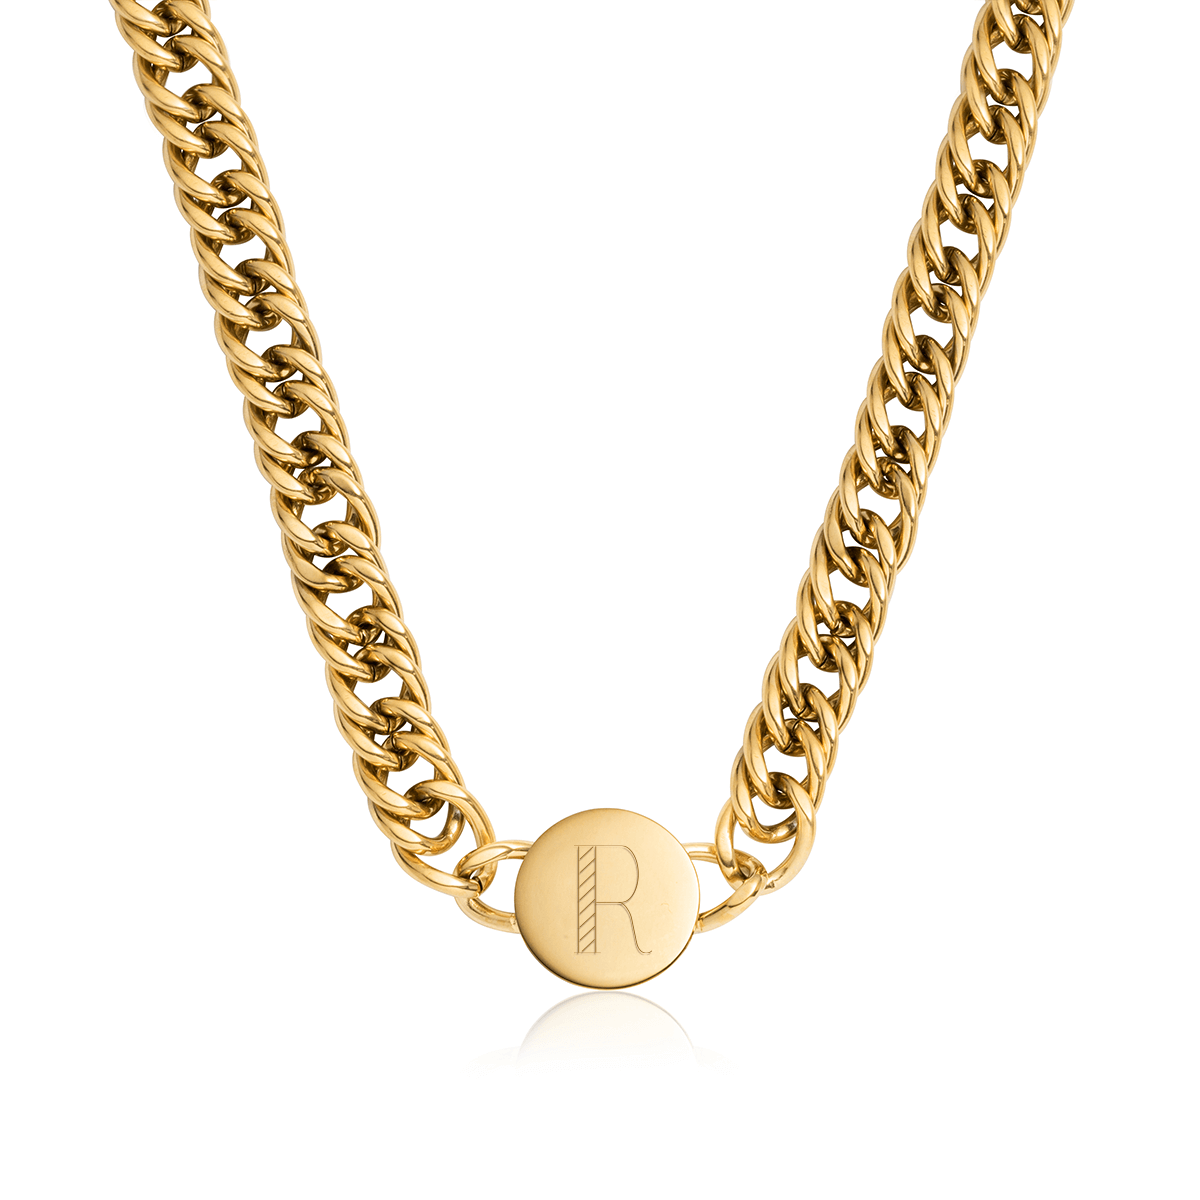 Circular Curb Chain Personalise Necklace (Gold)